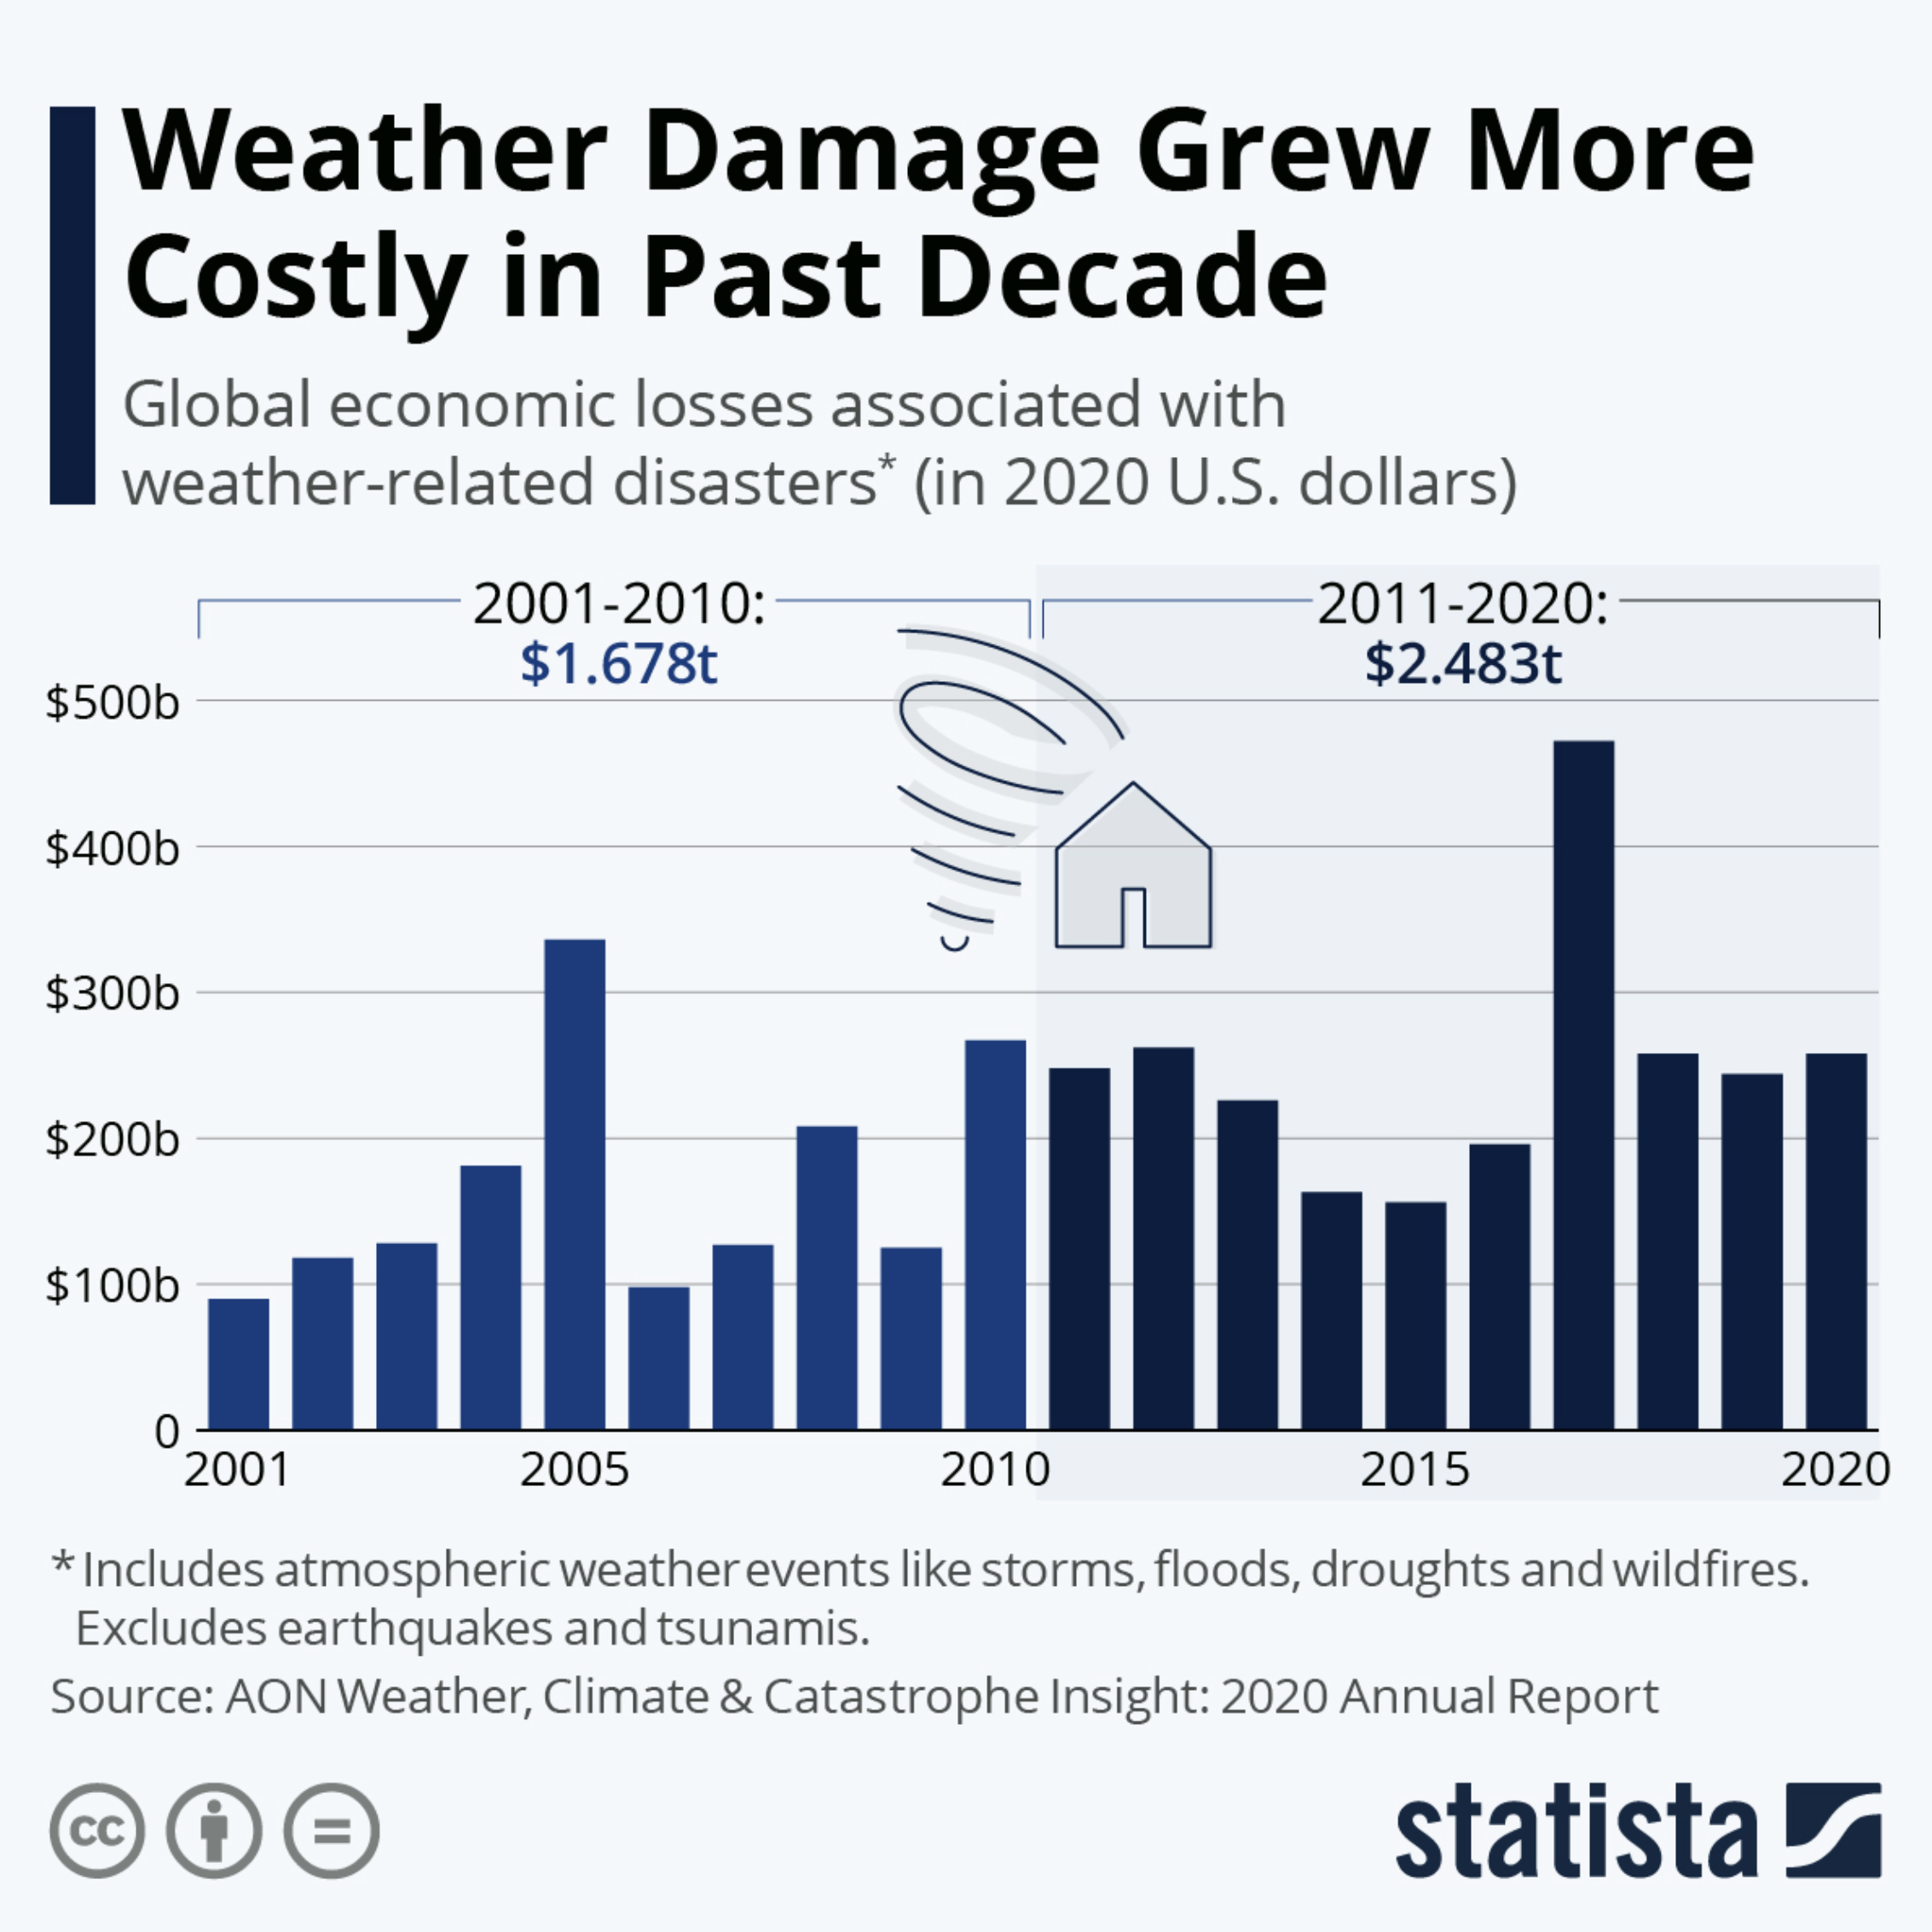 Weather damage grew more costly in the past decade